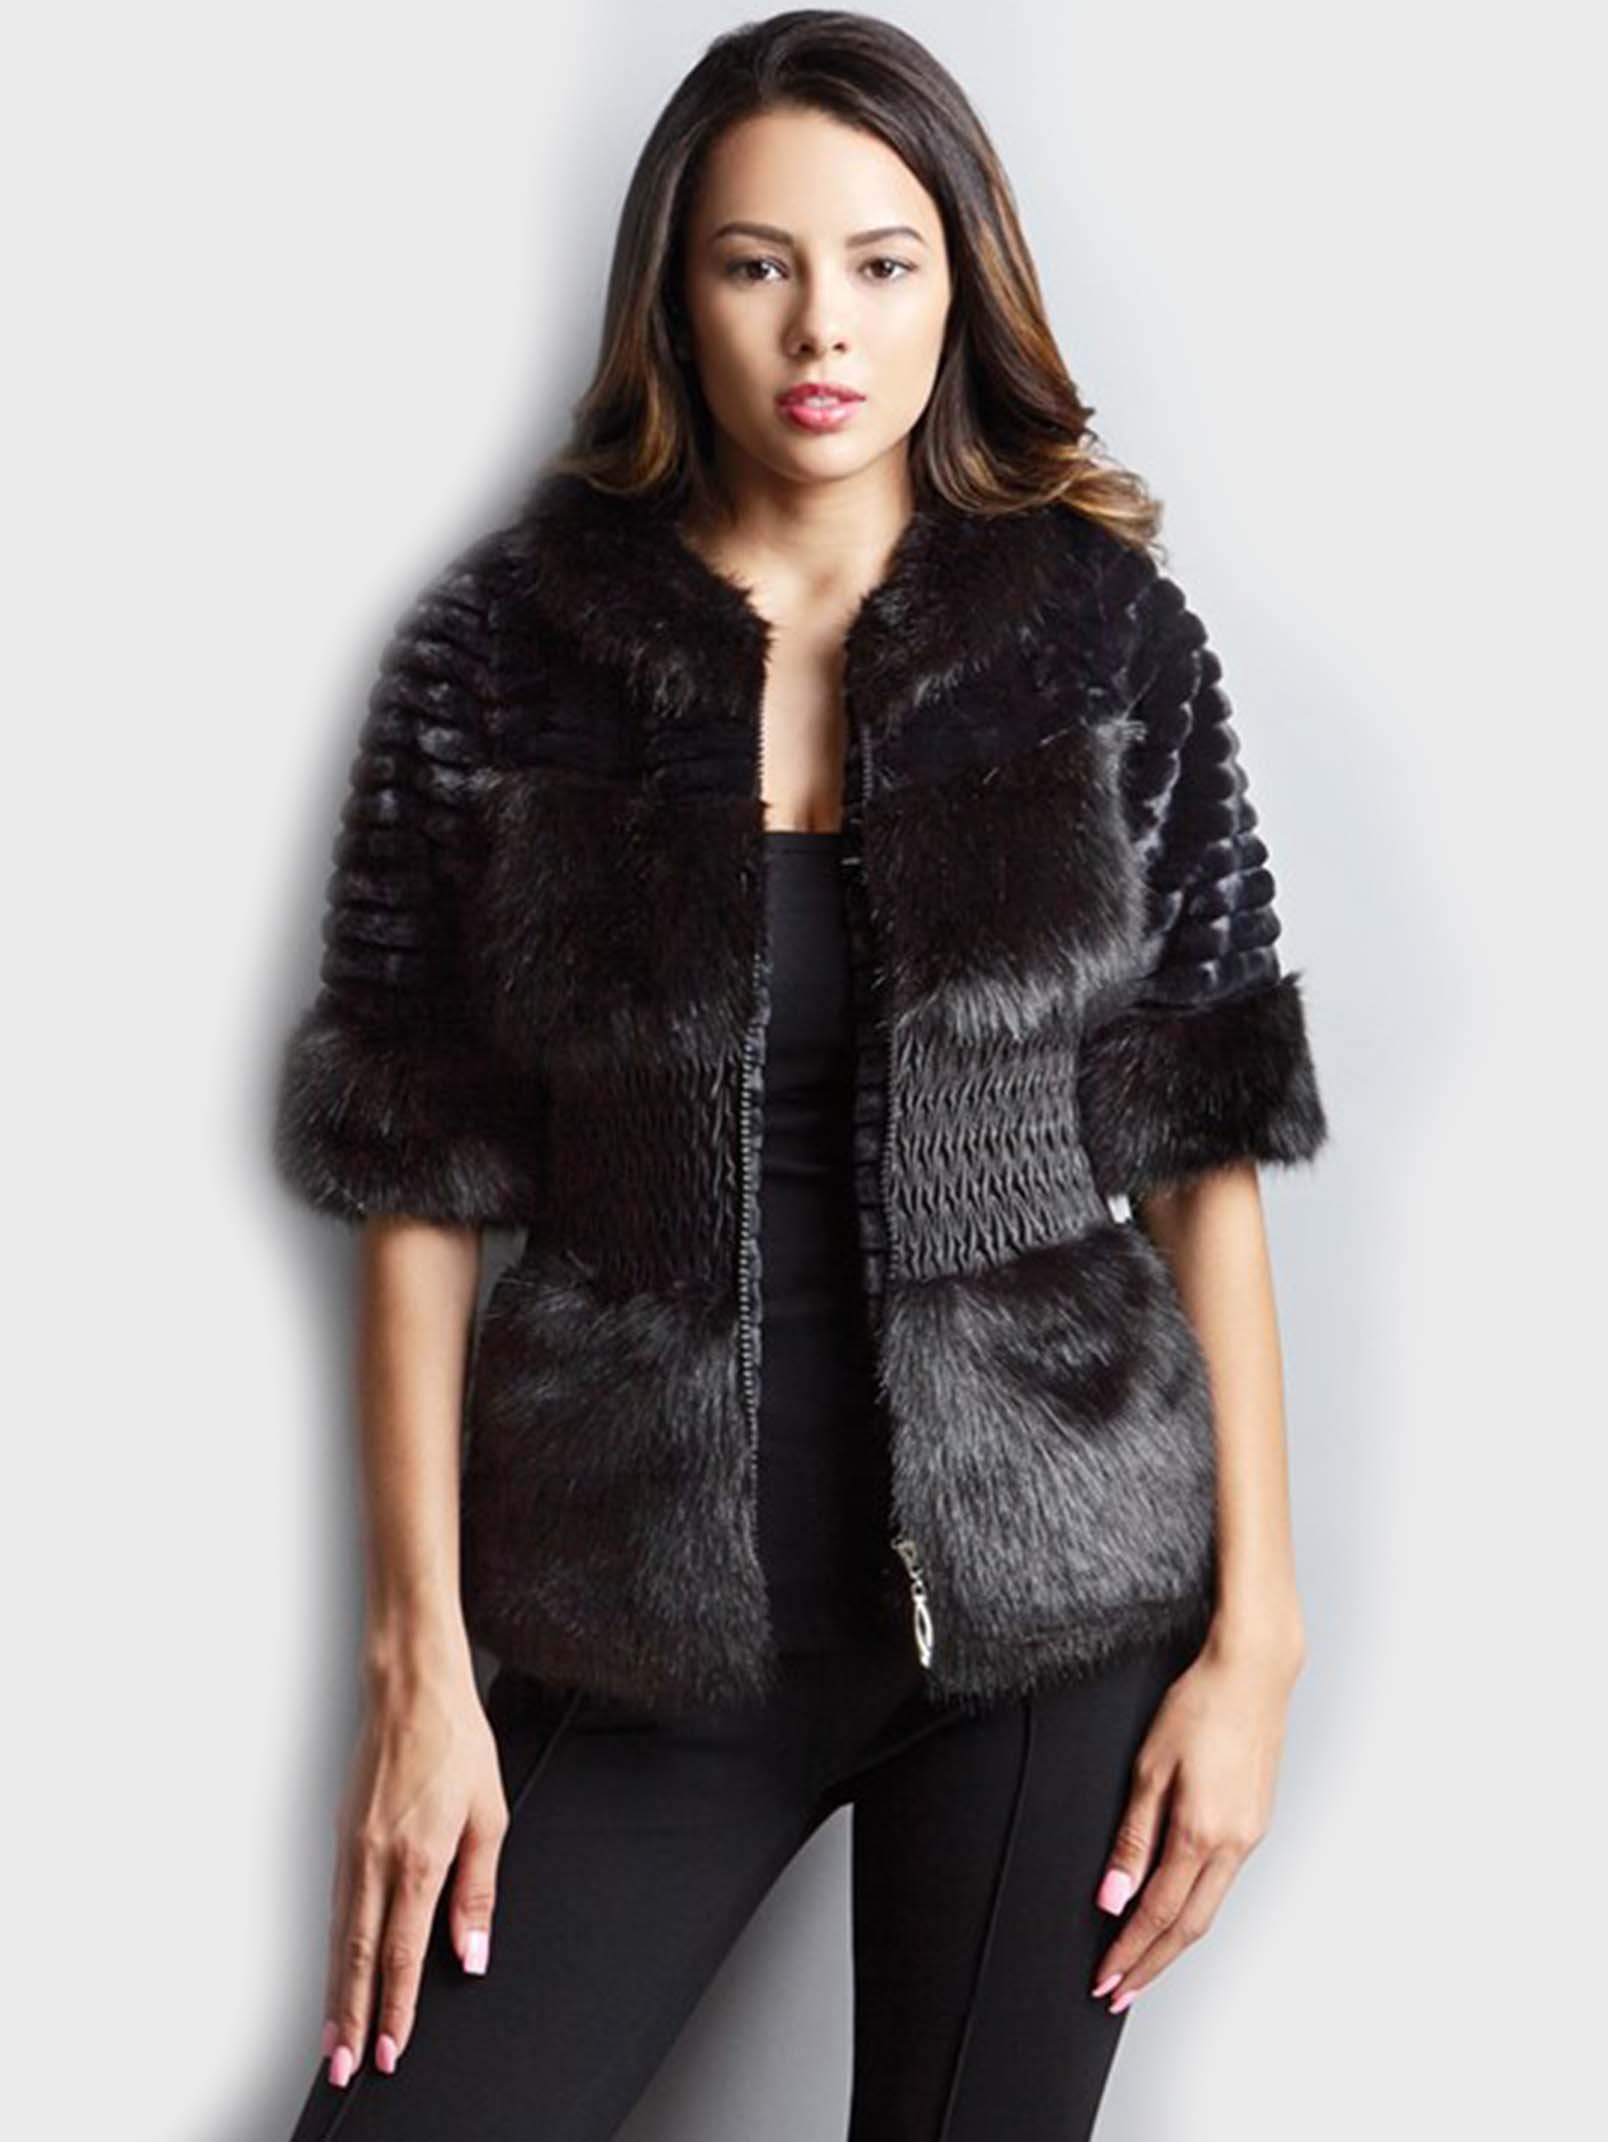 Black Short Fake Fur Coat - Tradingbasis